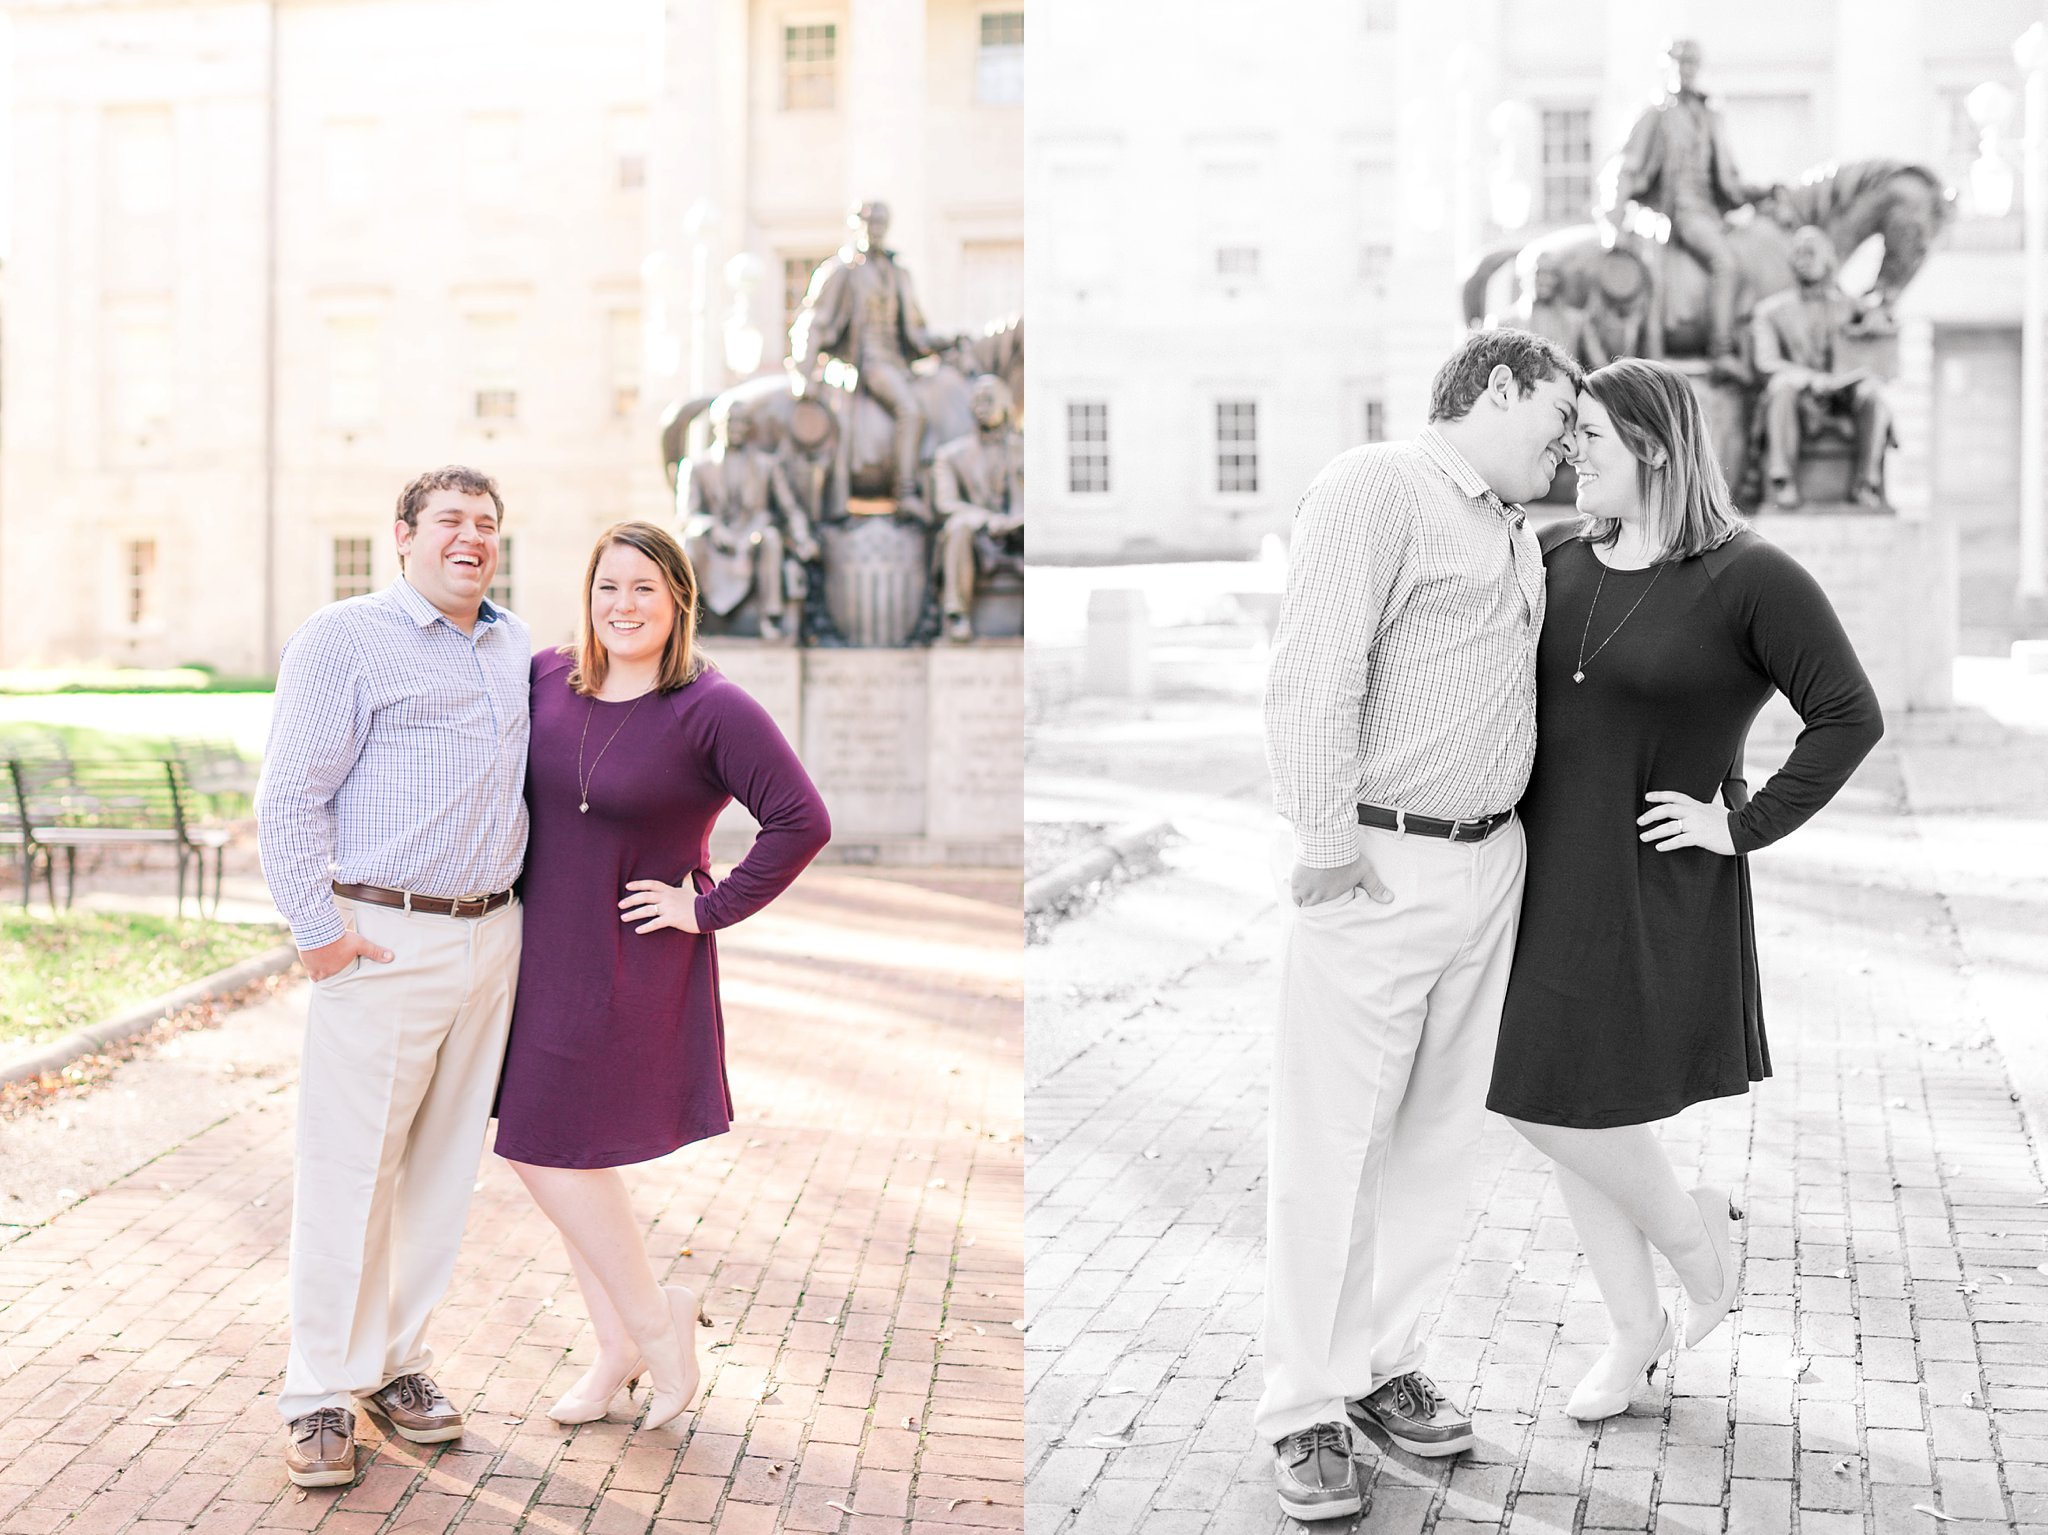 Raleigh Wedding Photographer Downtown Raleigh Engagement Photos Megan Kelsey Photography Kelly & Andrew-30_photo.jpg